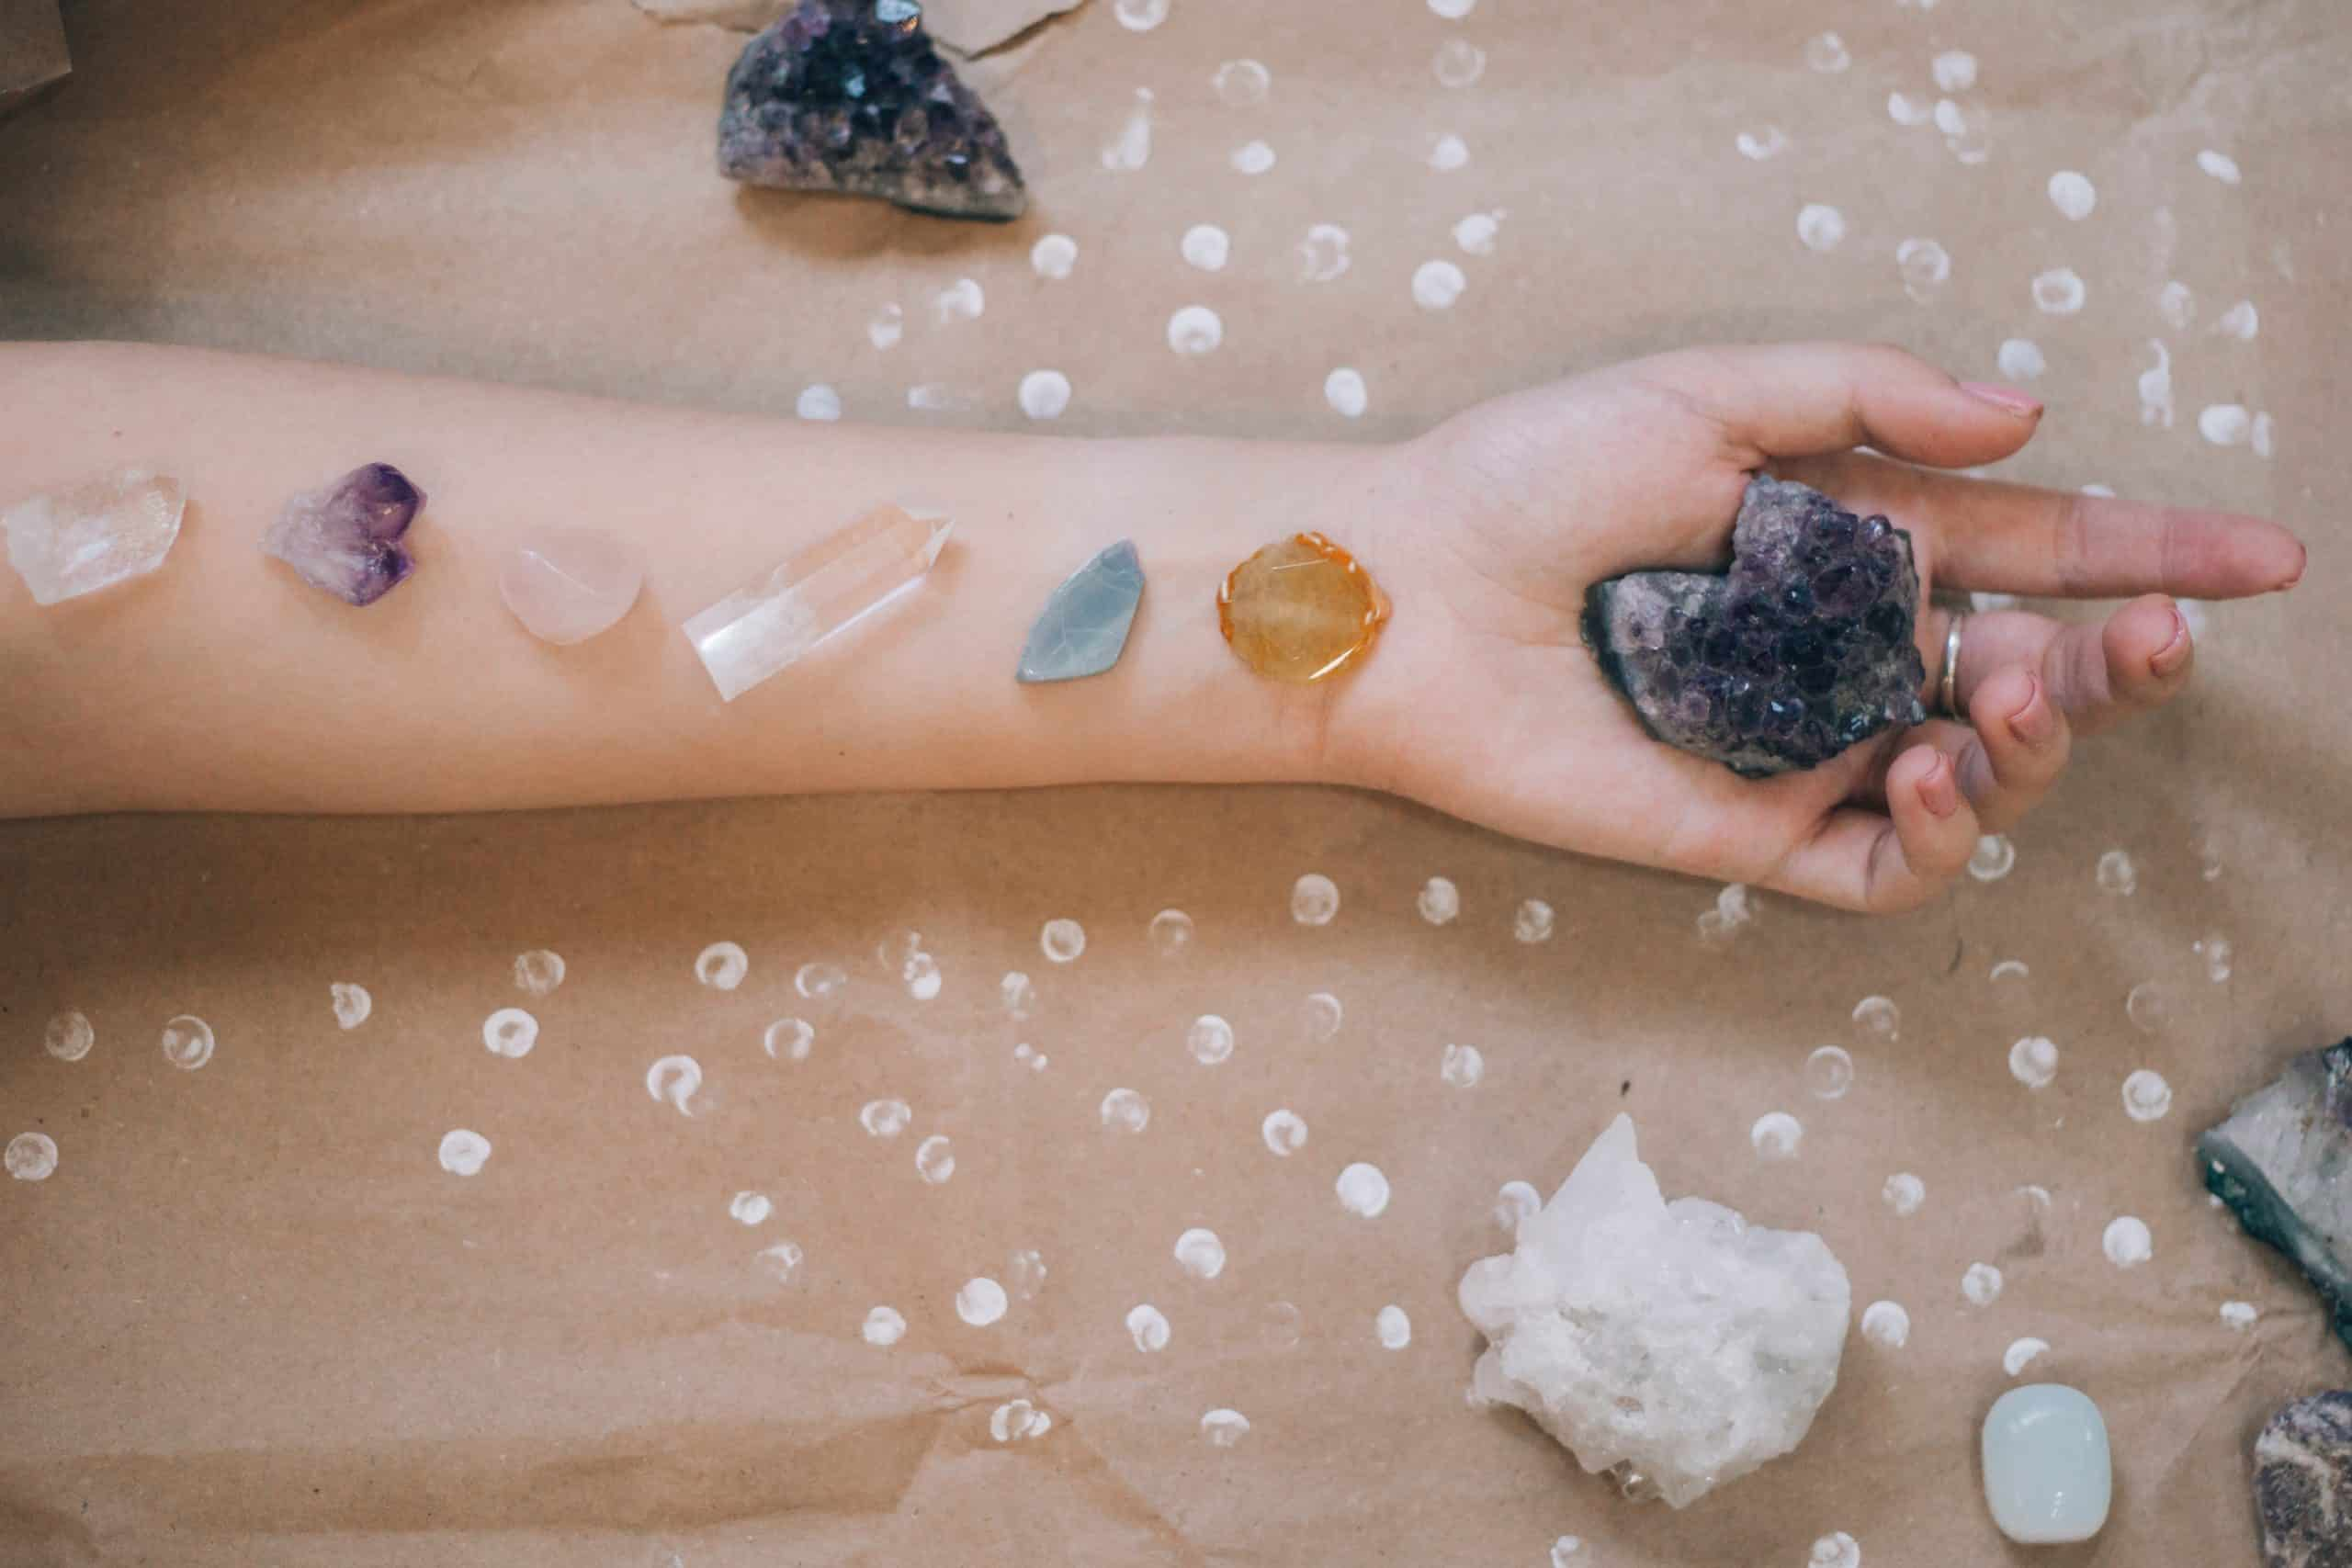 CRYSTAL CRASH COURSE: A BEGINNER'S GUIDE TO HEALING CRYSTALS